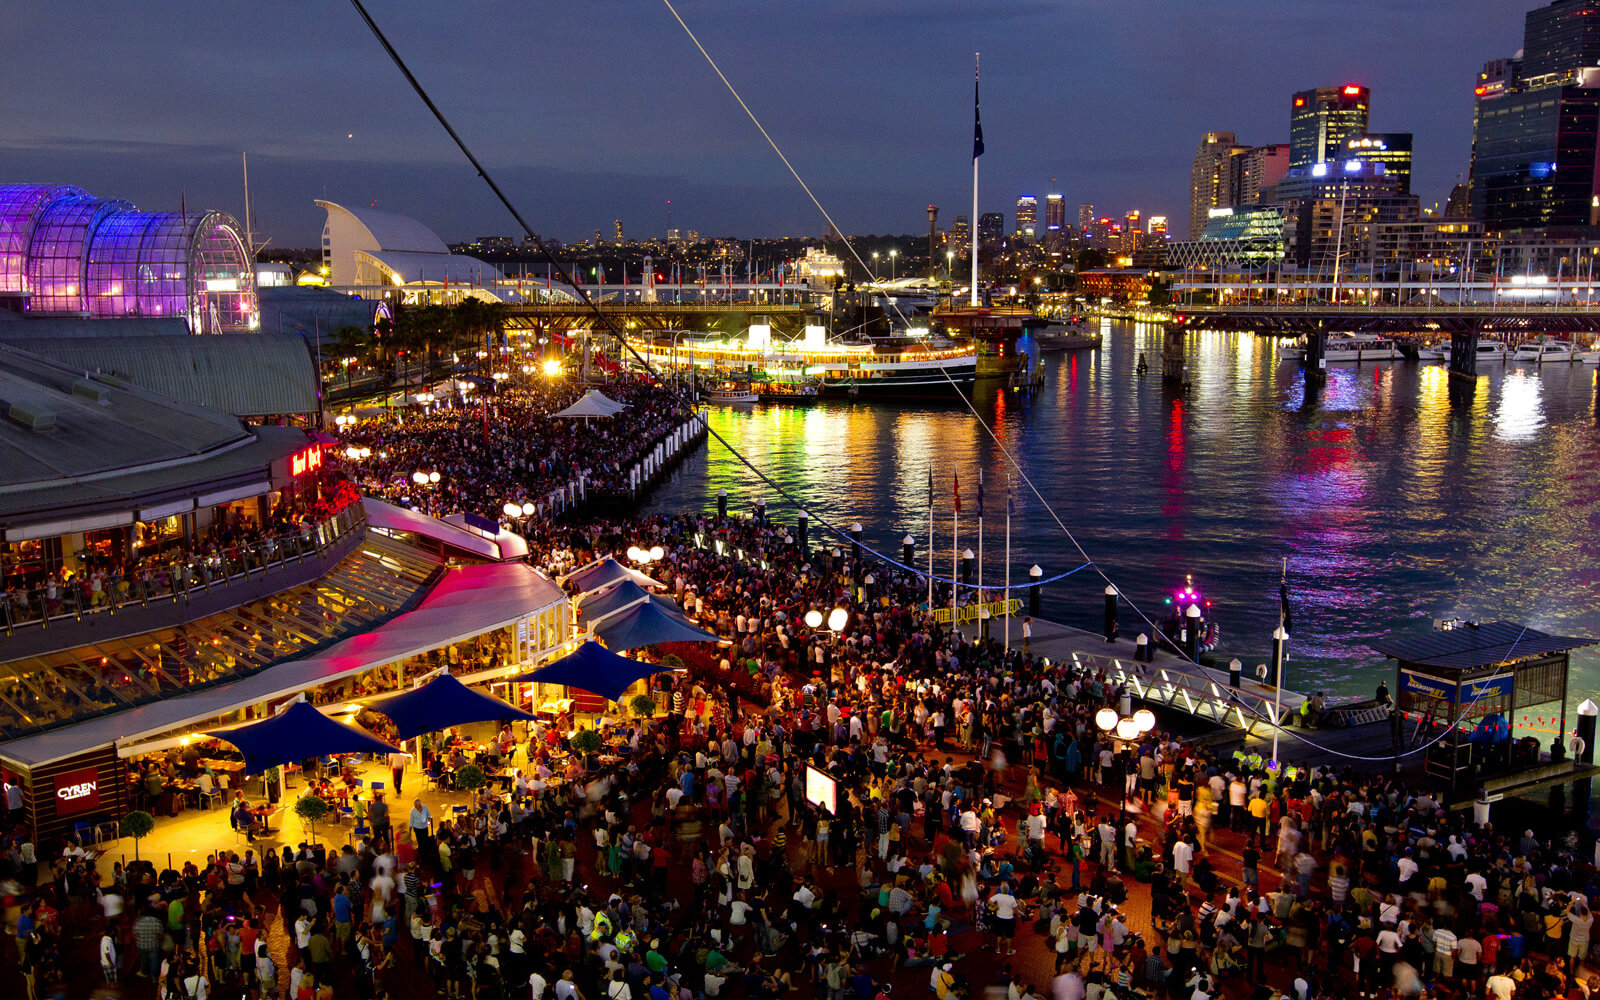 Australia Day: Darling Harbour Sydney